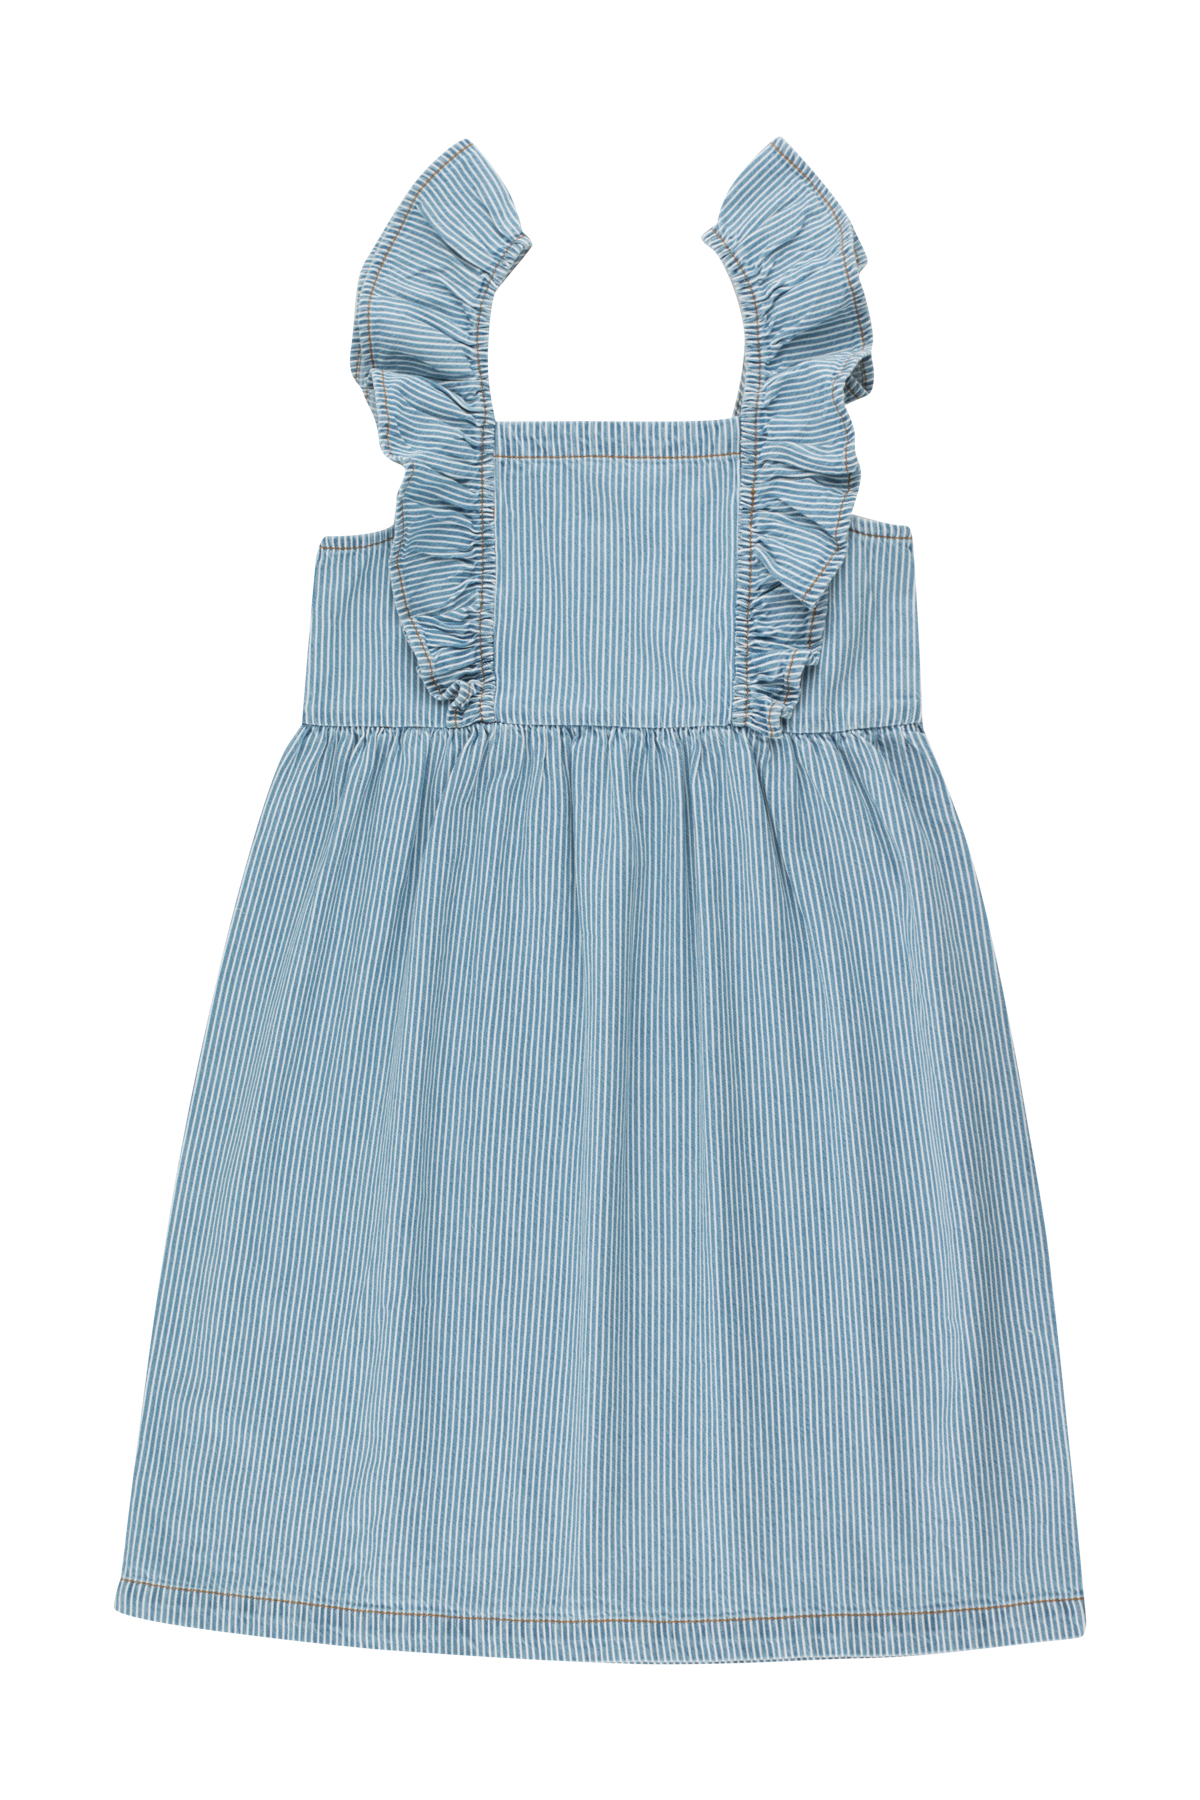 tinycottons striped denim frills dress